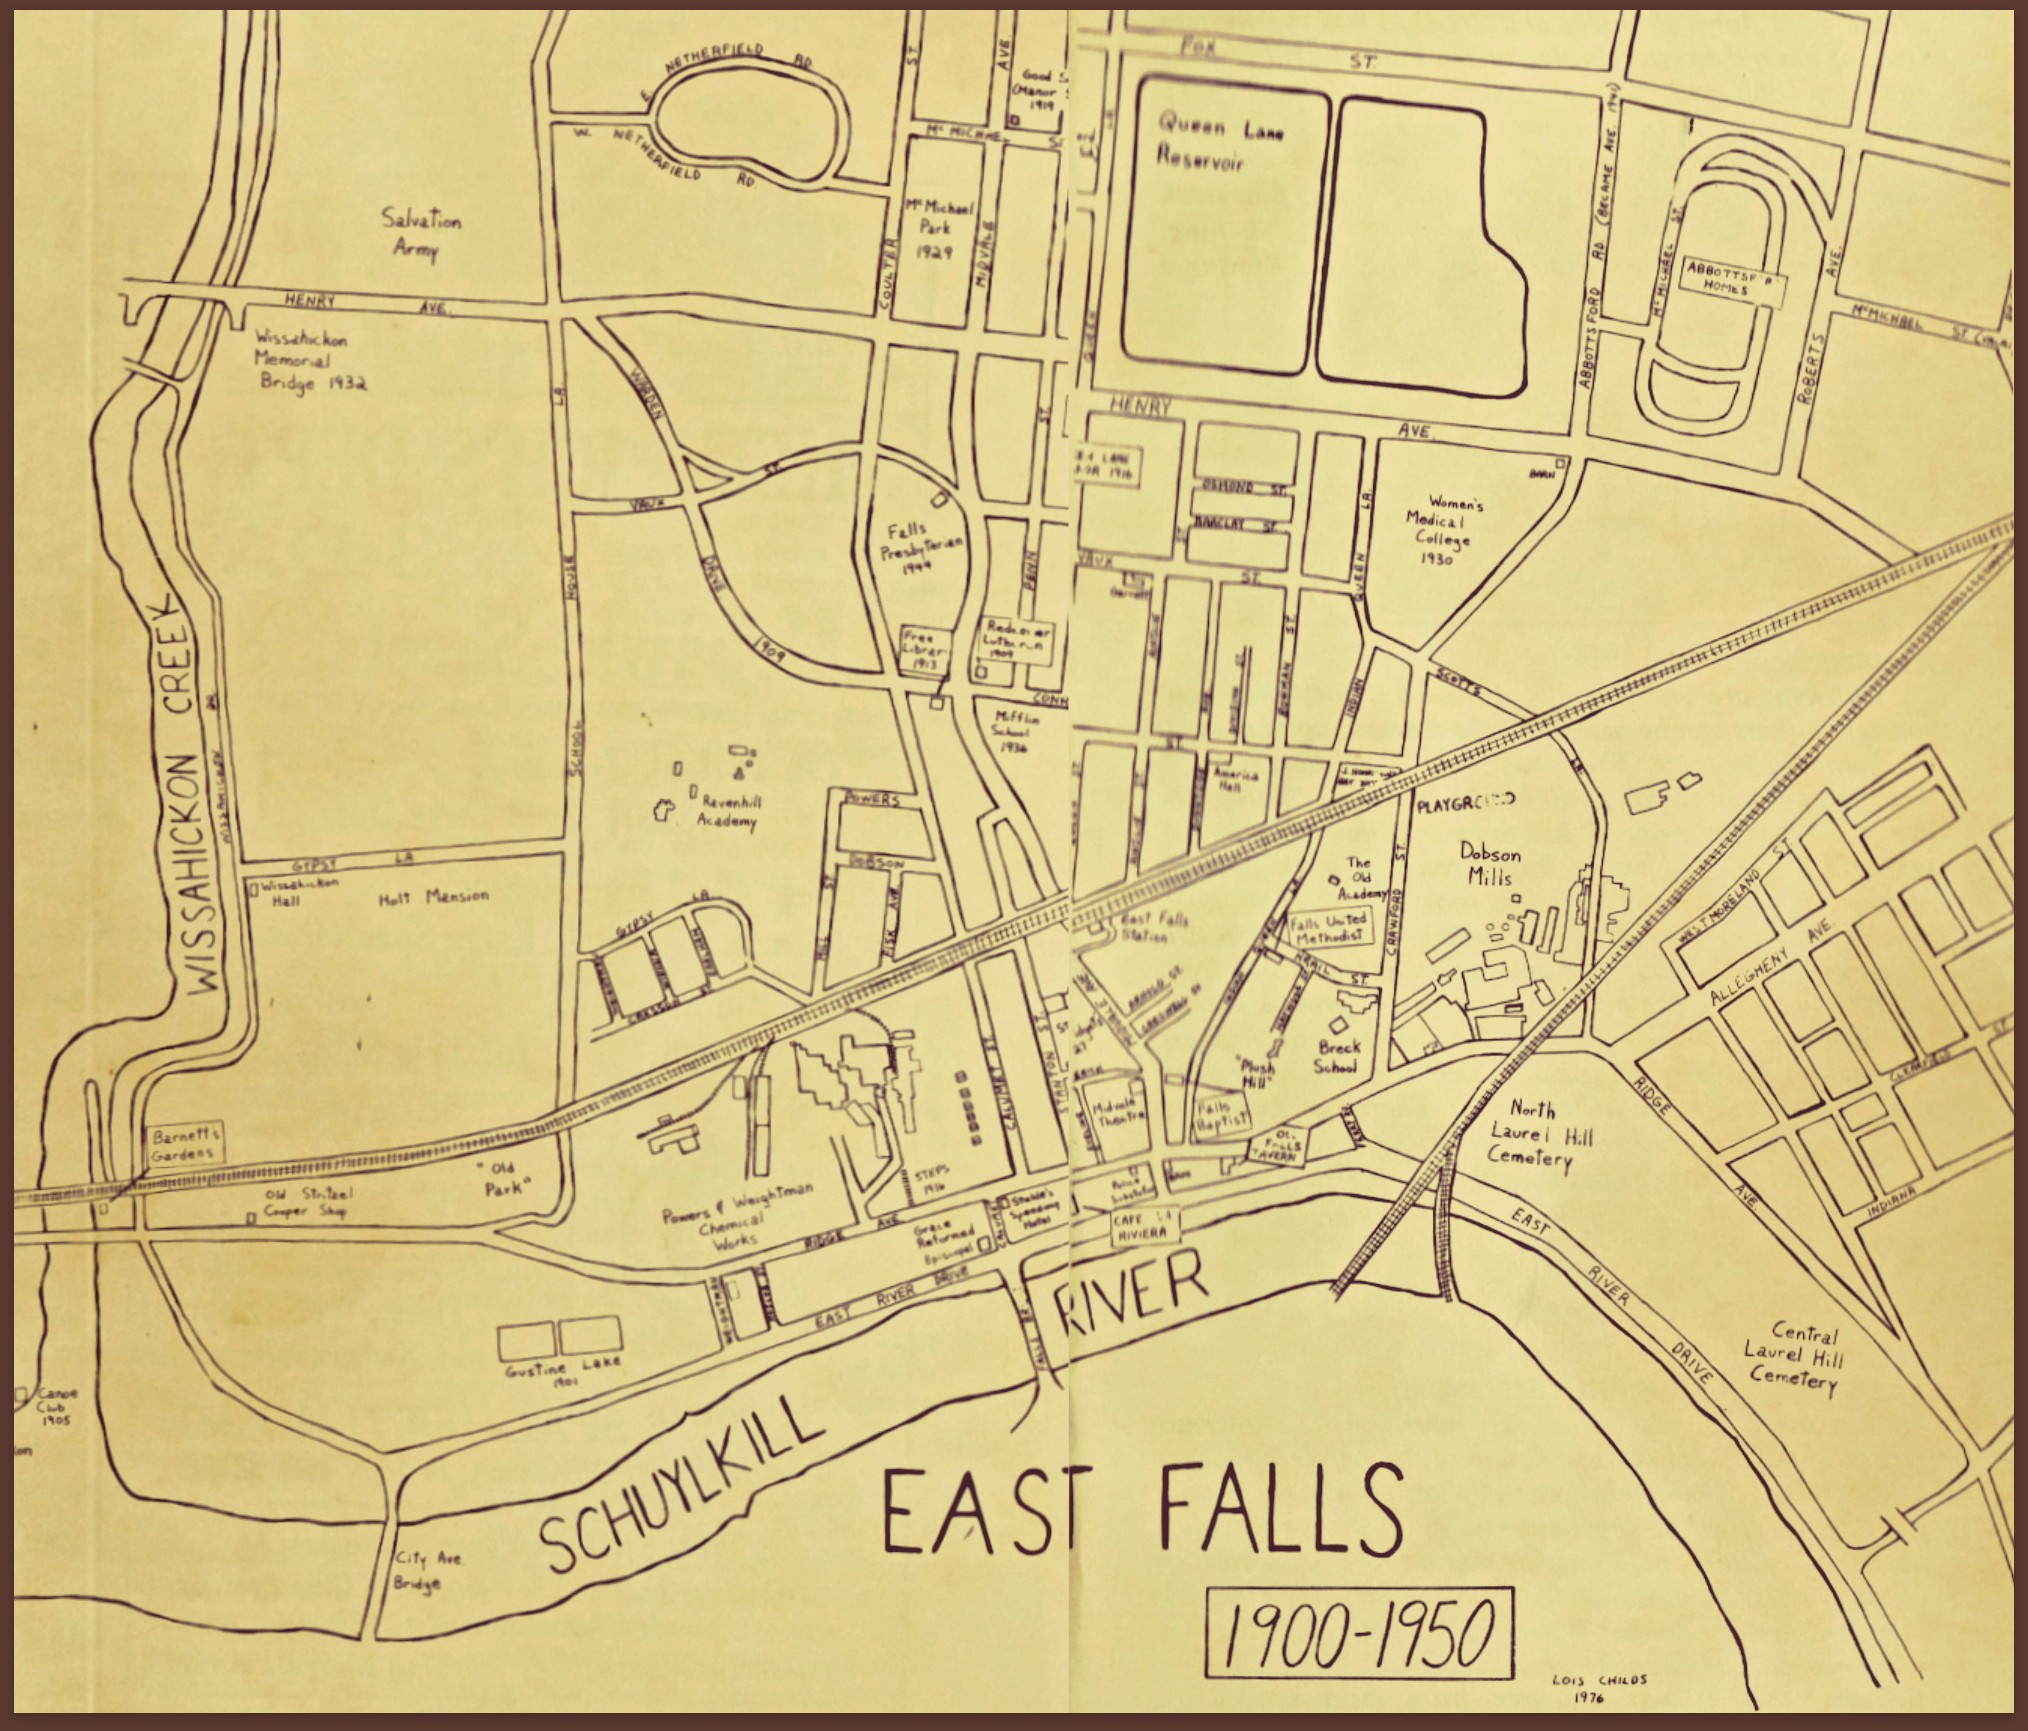 East Falls Local 300 years map 1900 to 1950